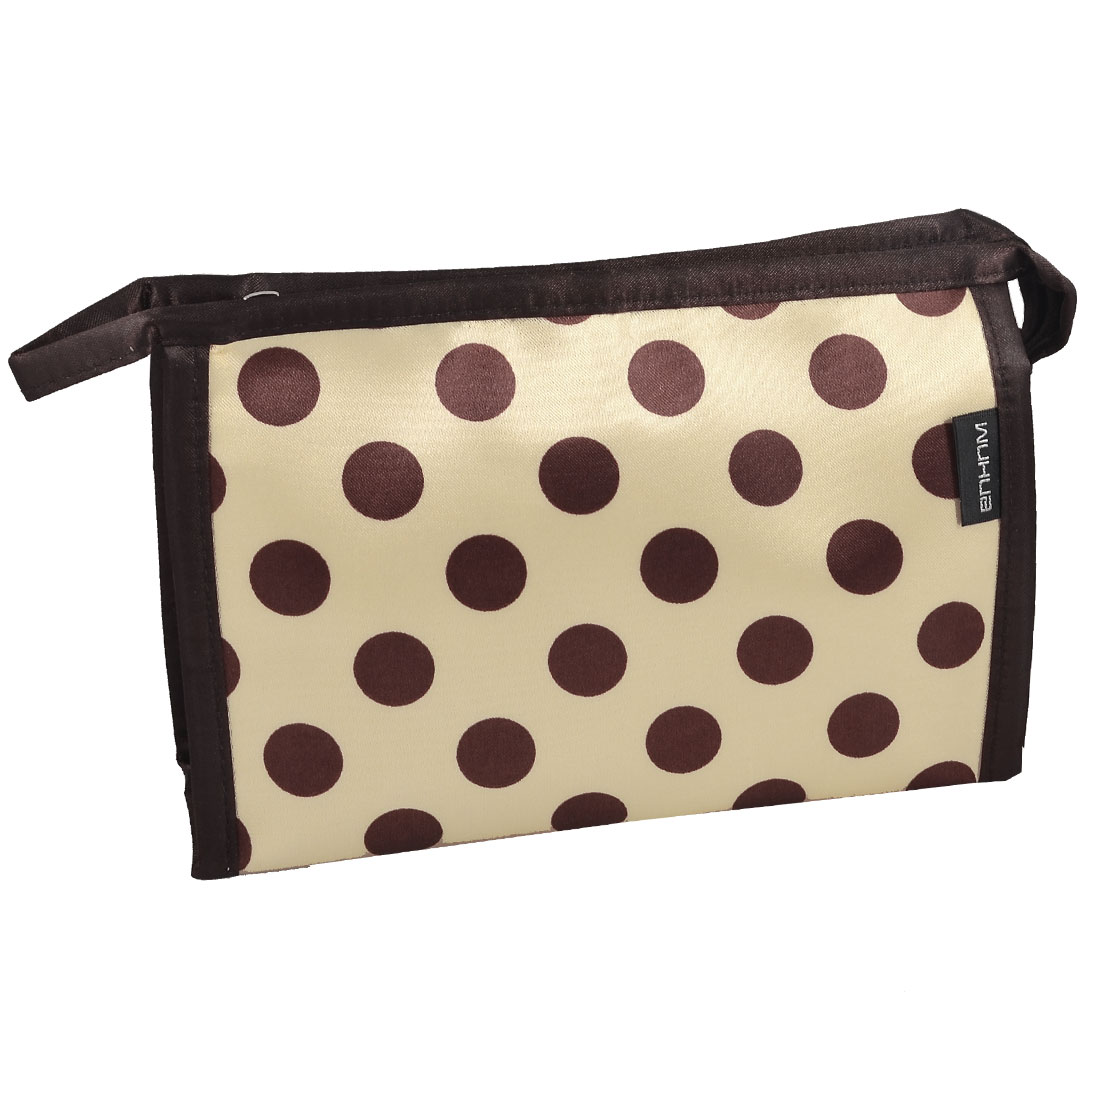 Travel Brown Khaki Polka Dot Cosmetic Bag Pouch Organizer Holder w Mirror